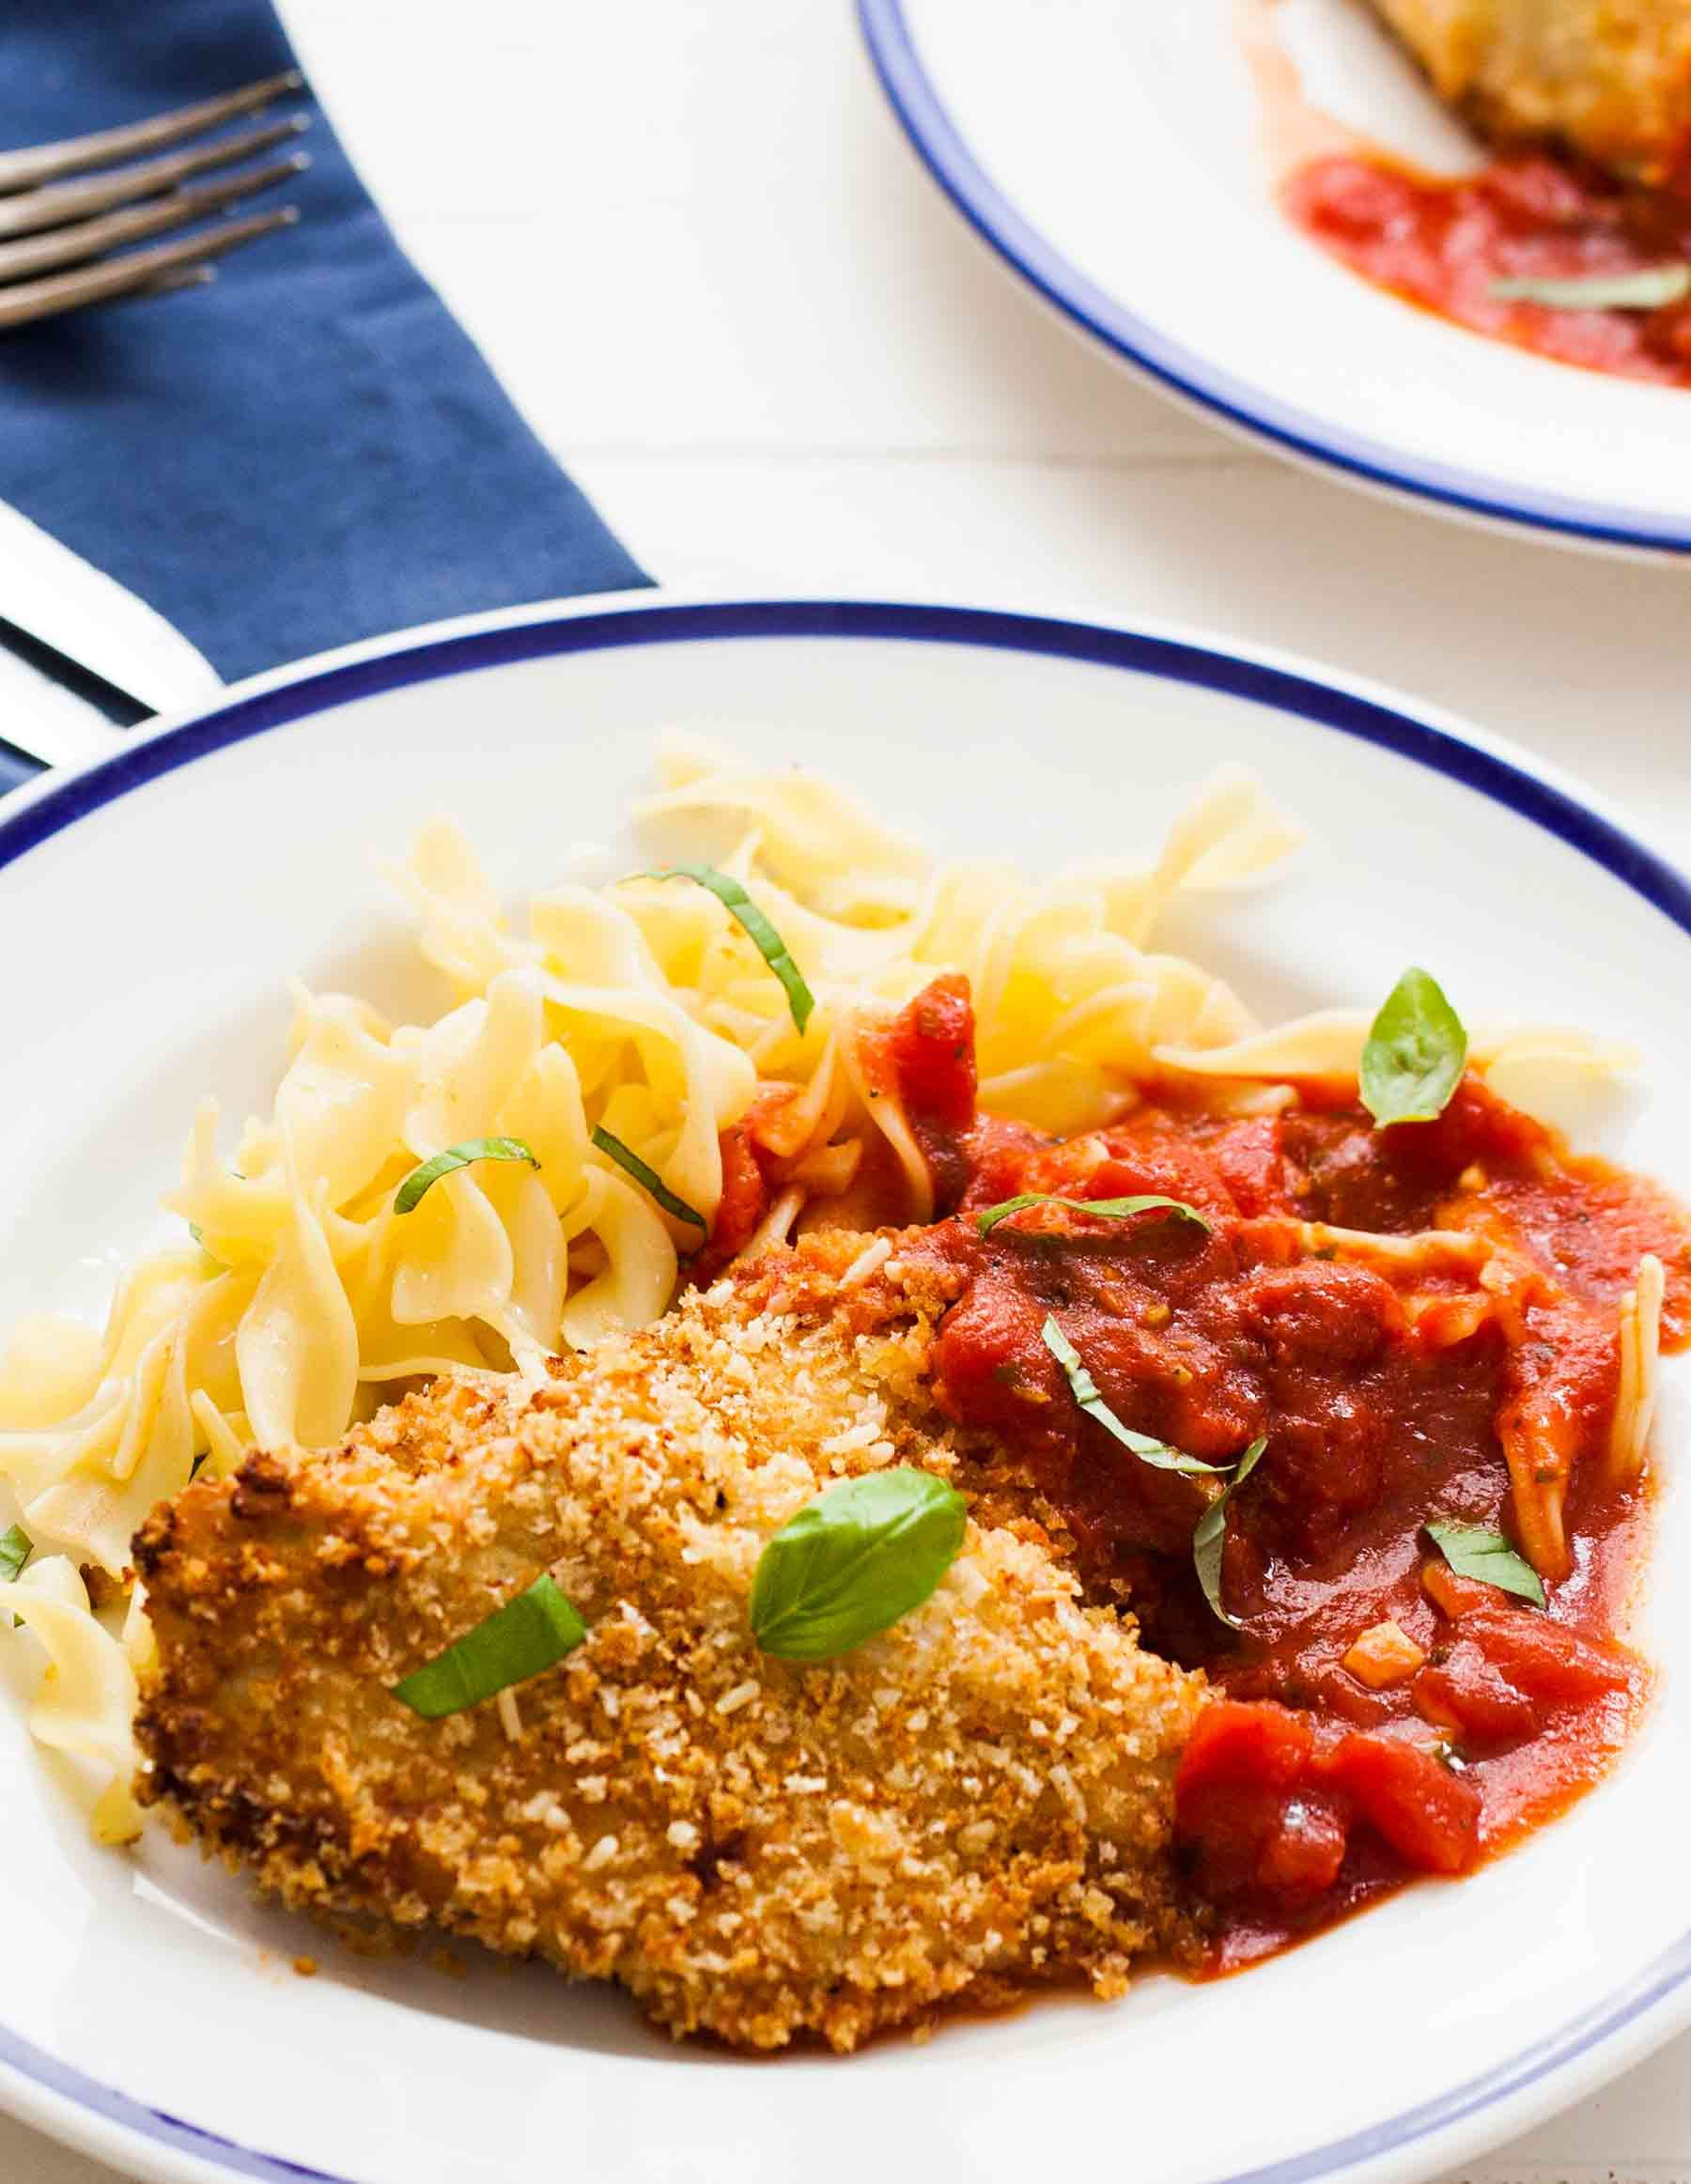 Baked Chicken Parmesan Easy And Quick Chicken Cutlets Breaded With